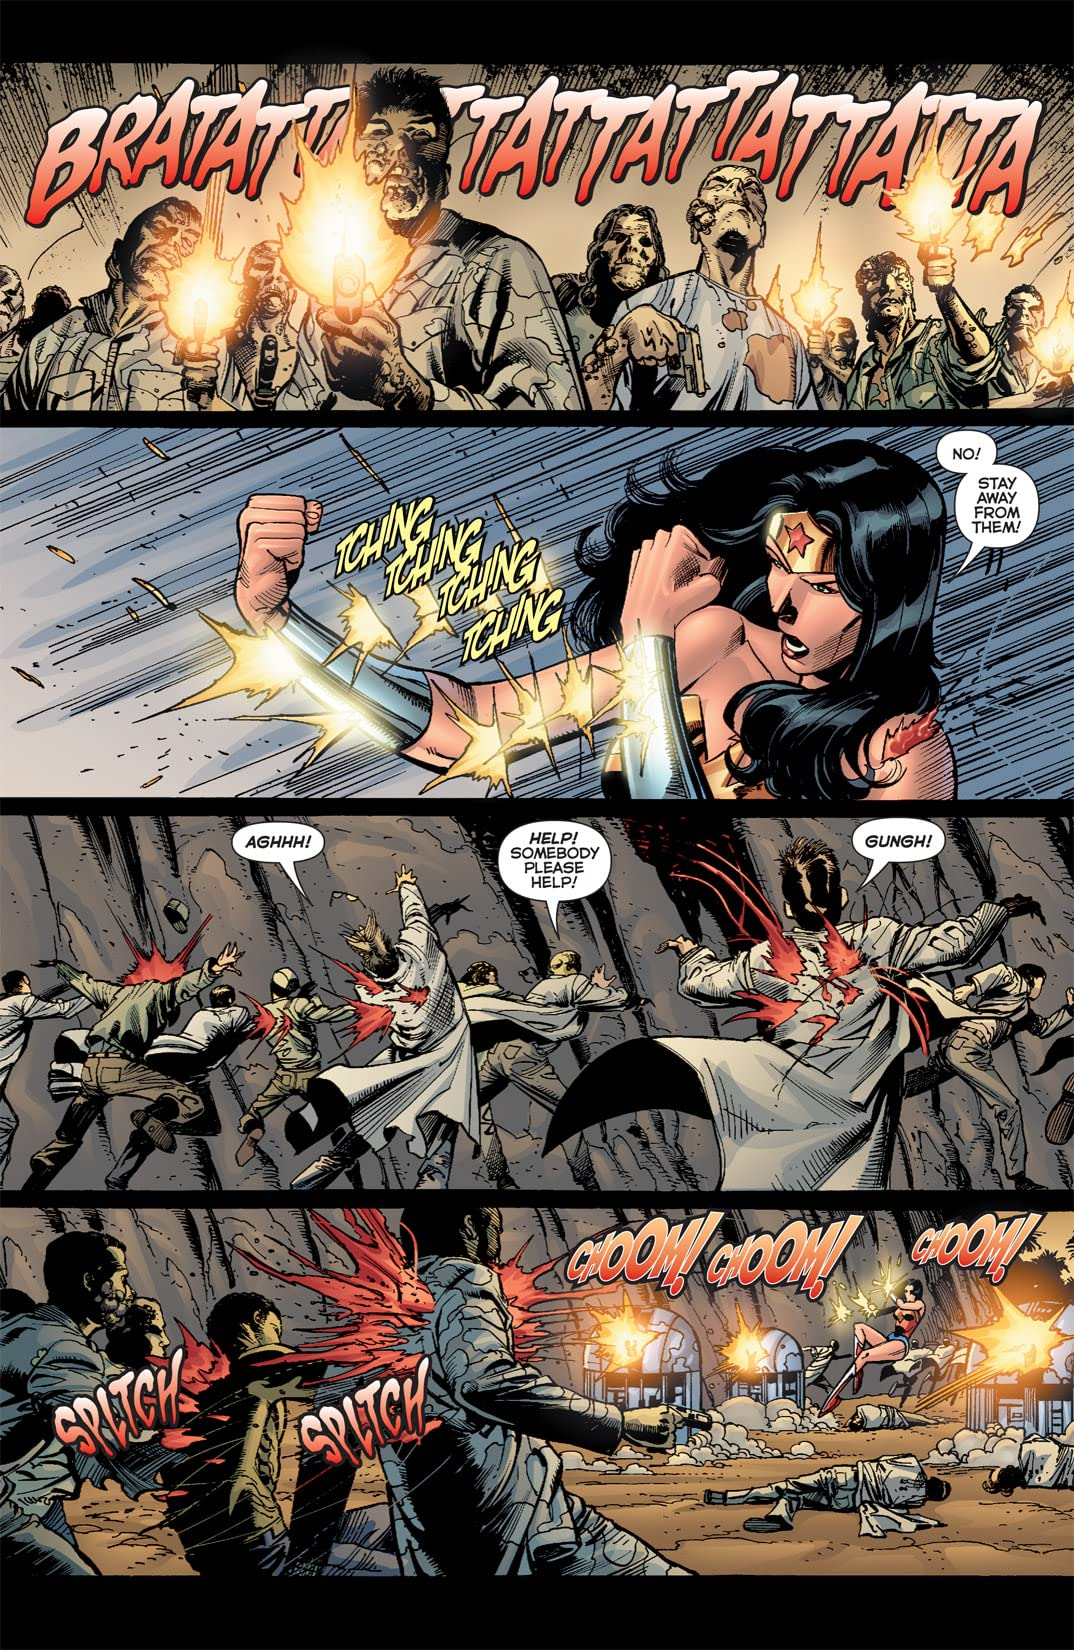 52 Aftermath: The Four Horsemen #4 (of 6)